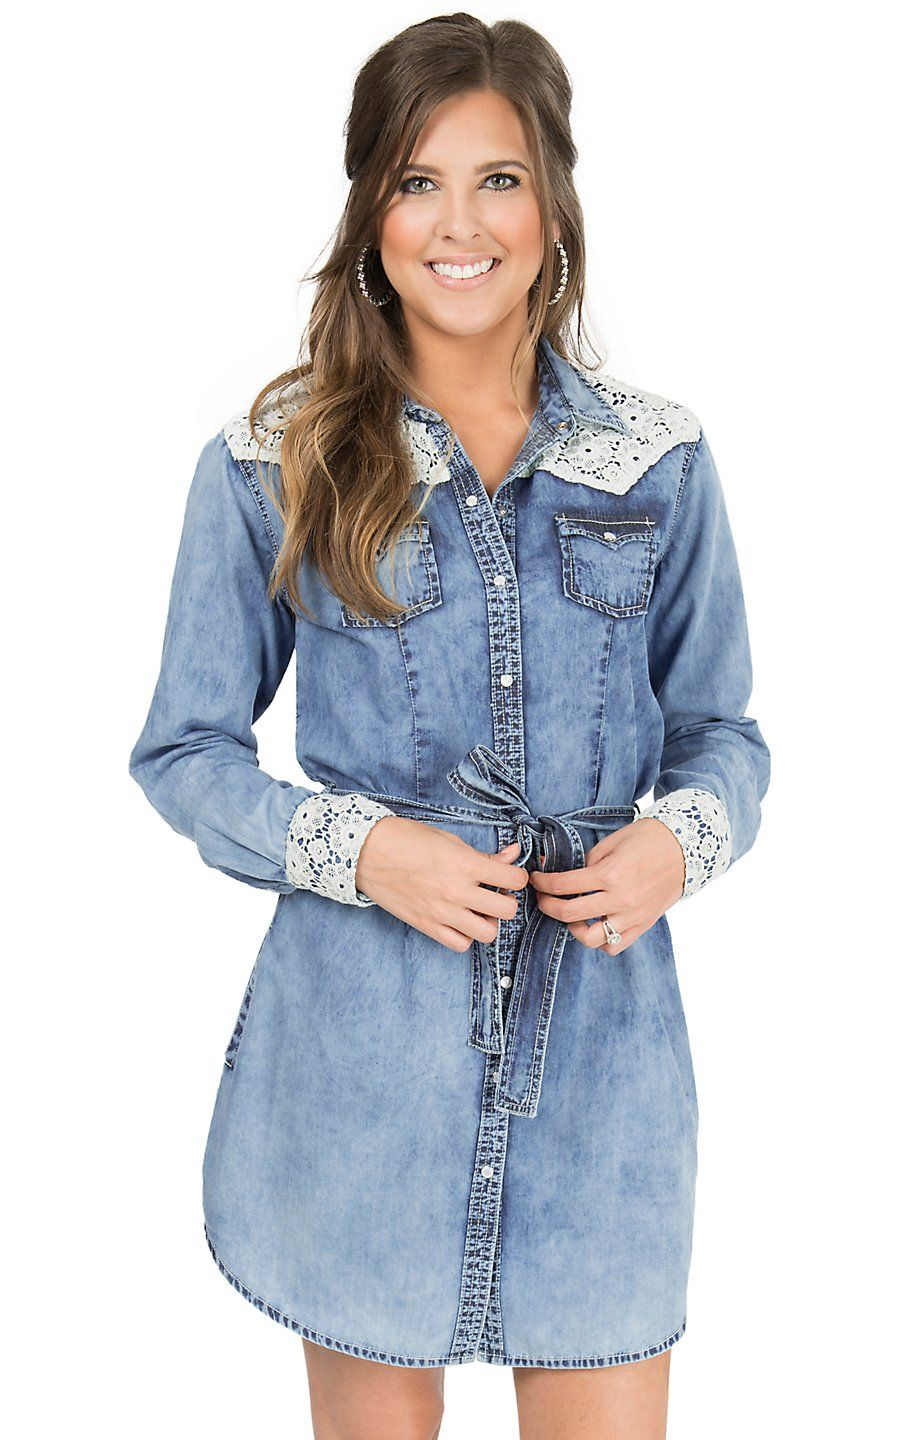 fd940a491e4 Panhandle Women s Distressed Chambray with Lace Trim Long Sleeve Western  Shirt Dress